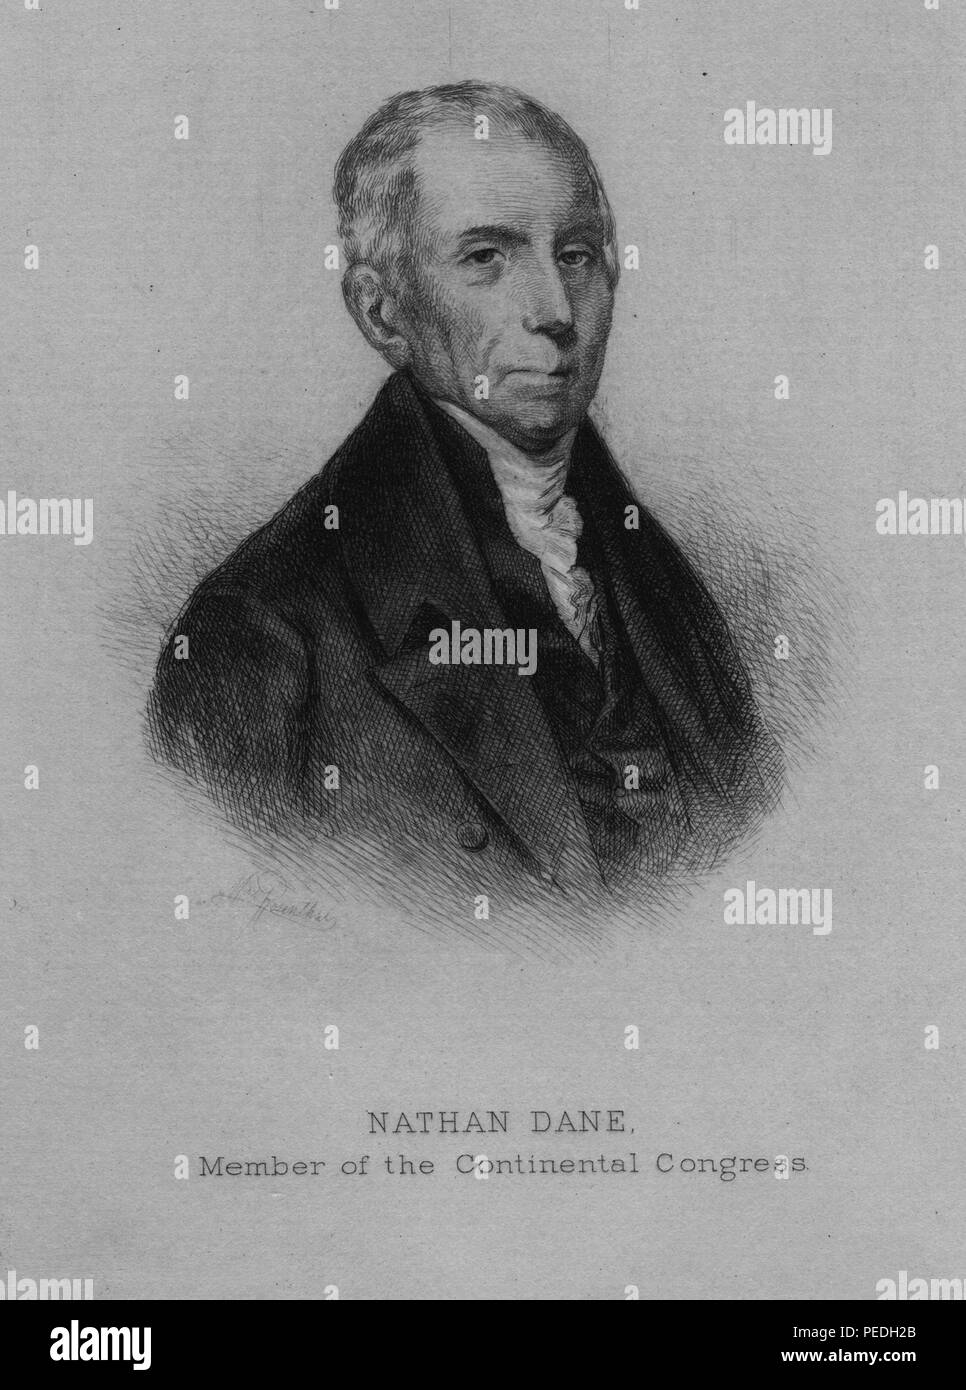 Engraved portrait of Nathan Dane, lawyer and statesman who was a member of the Continental Congress and a successful author of influential legal texts, 1885. From the New York Public Library. () - Stock Image